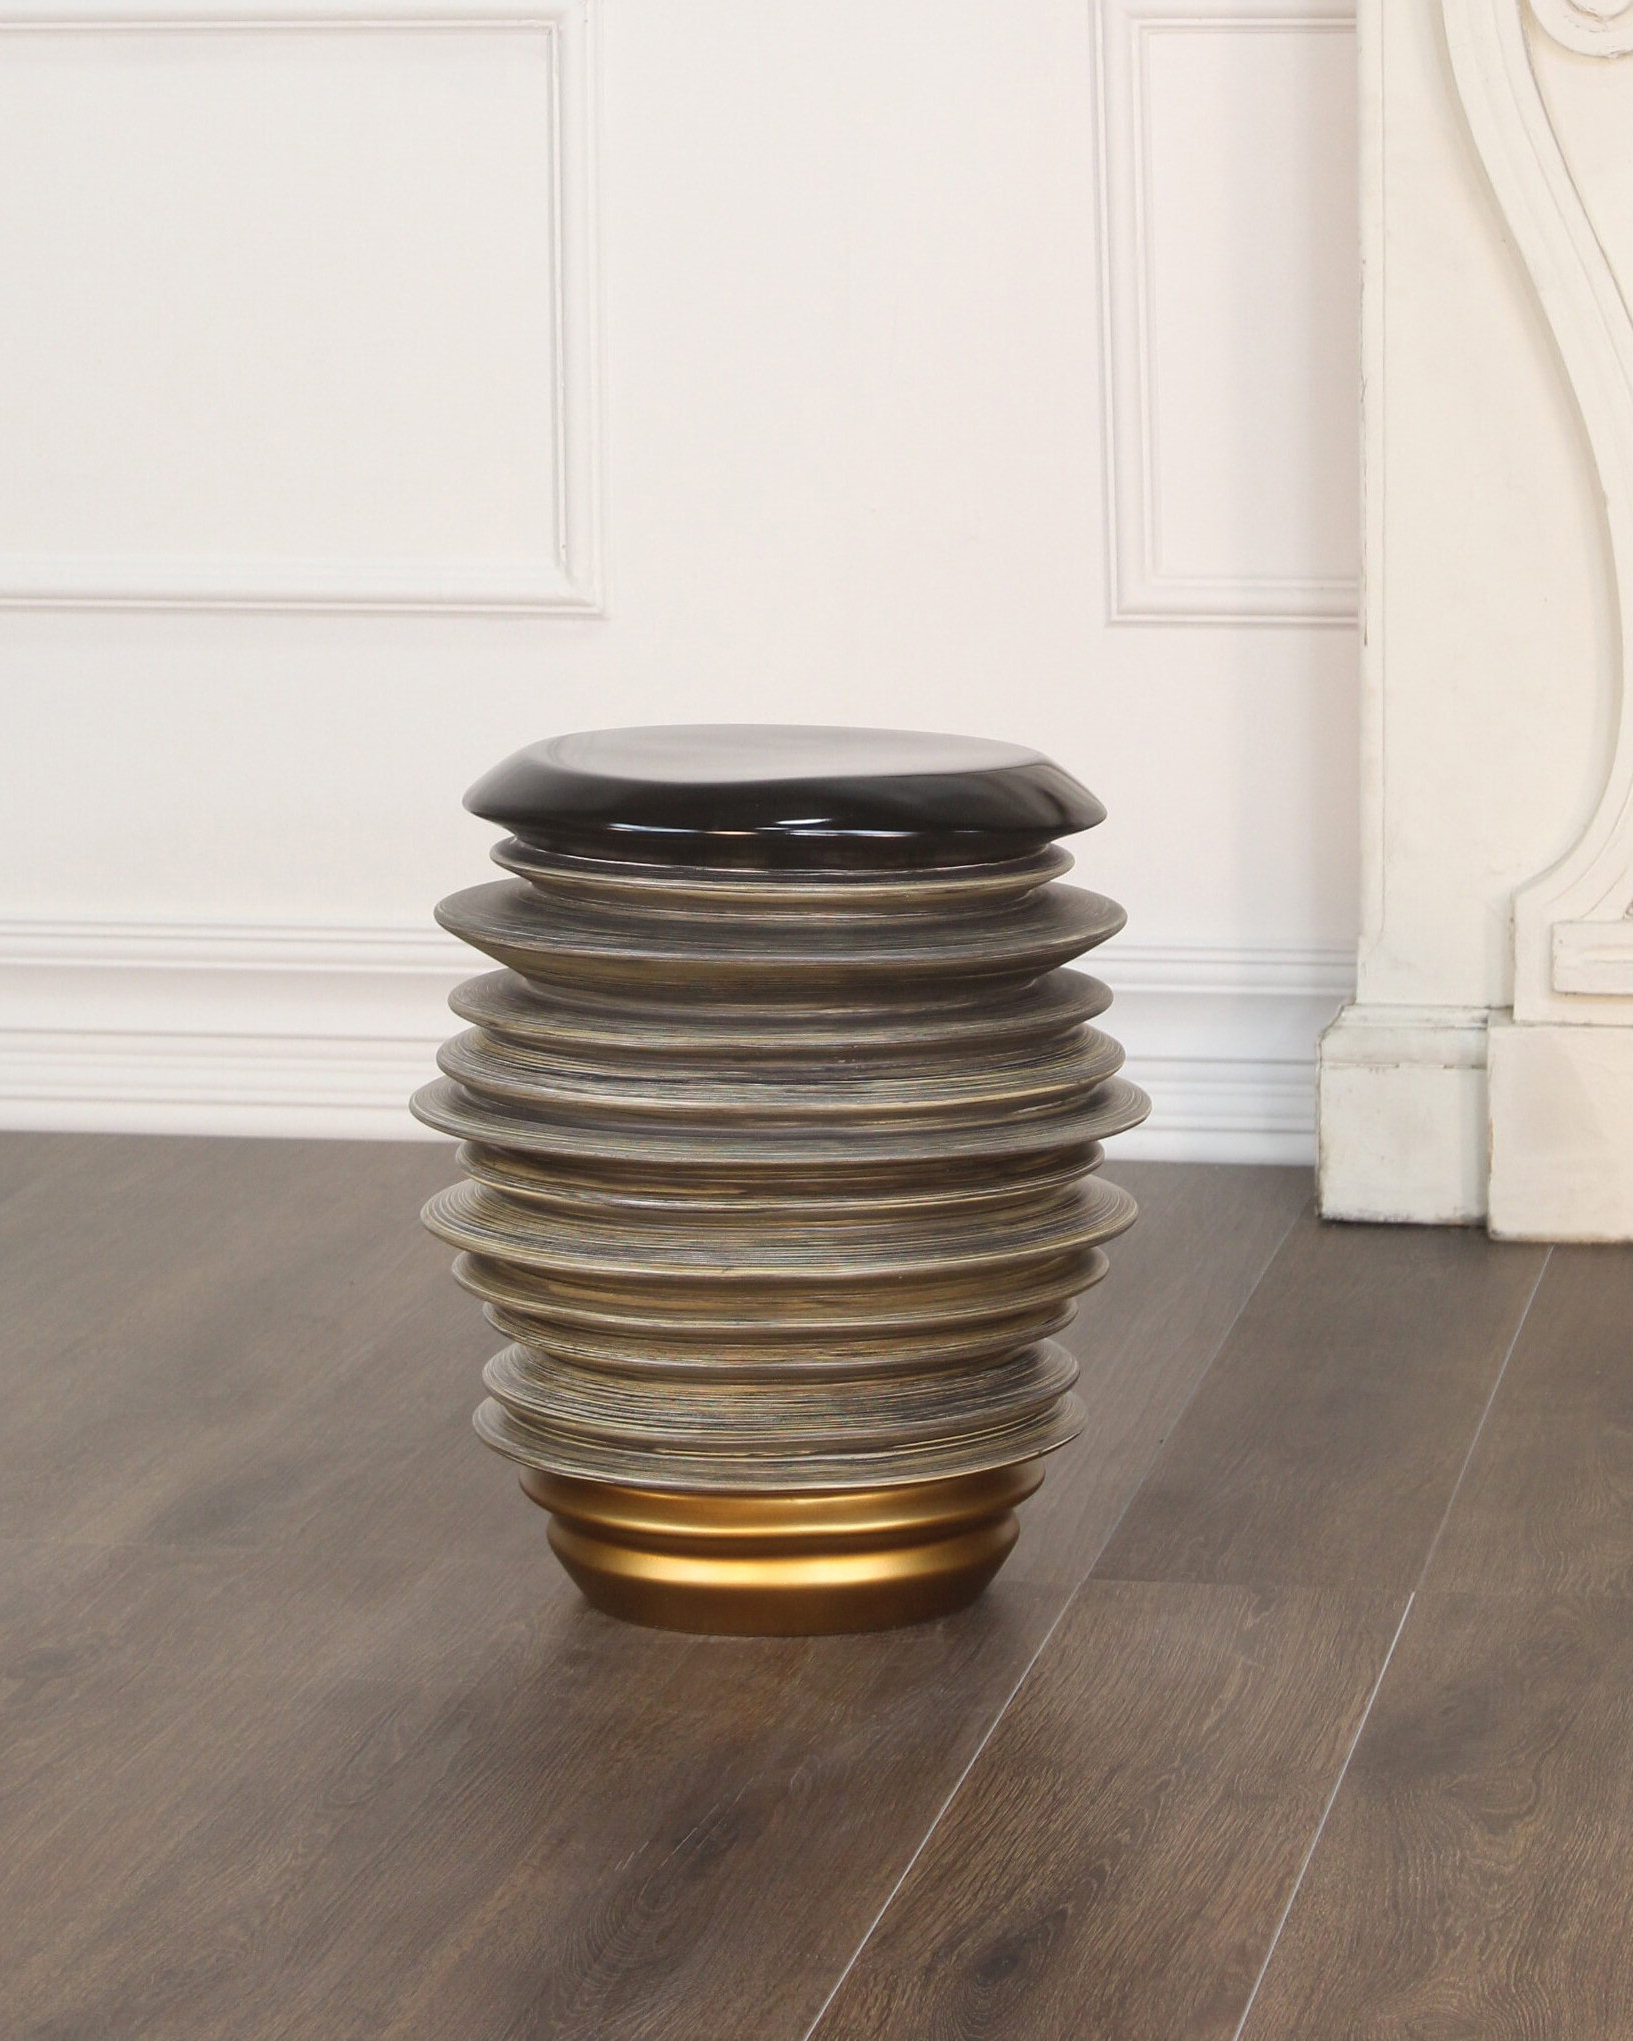 Brode Ceramic Garden Stools In Most Recently Released Jarrod Ceramic Garden Stool (View 14 of 31)